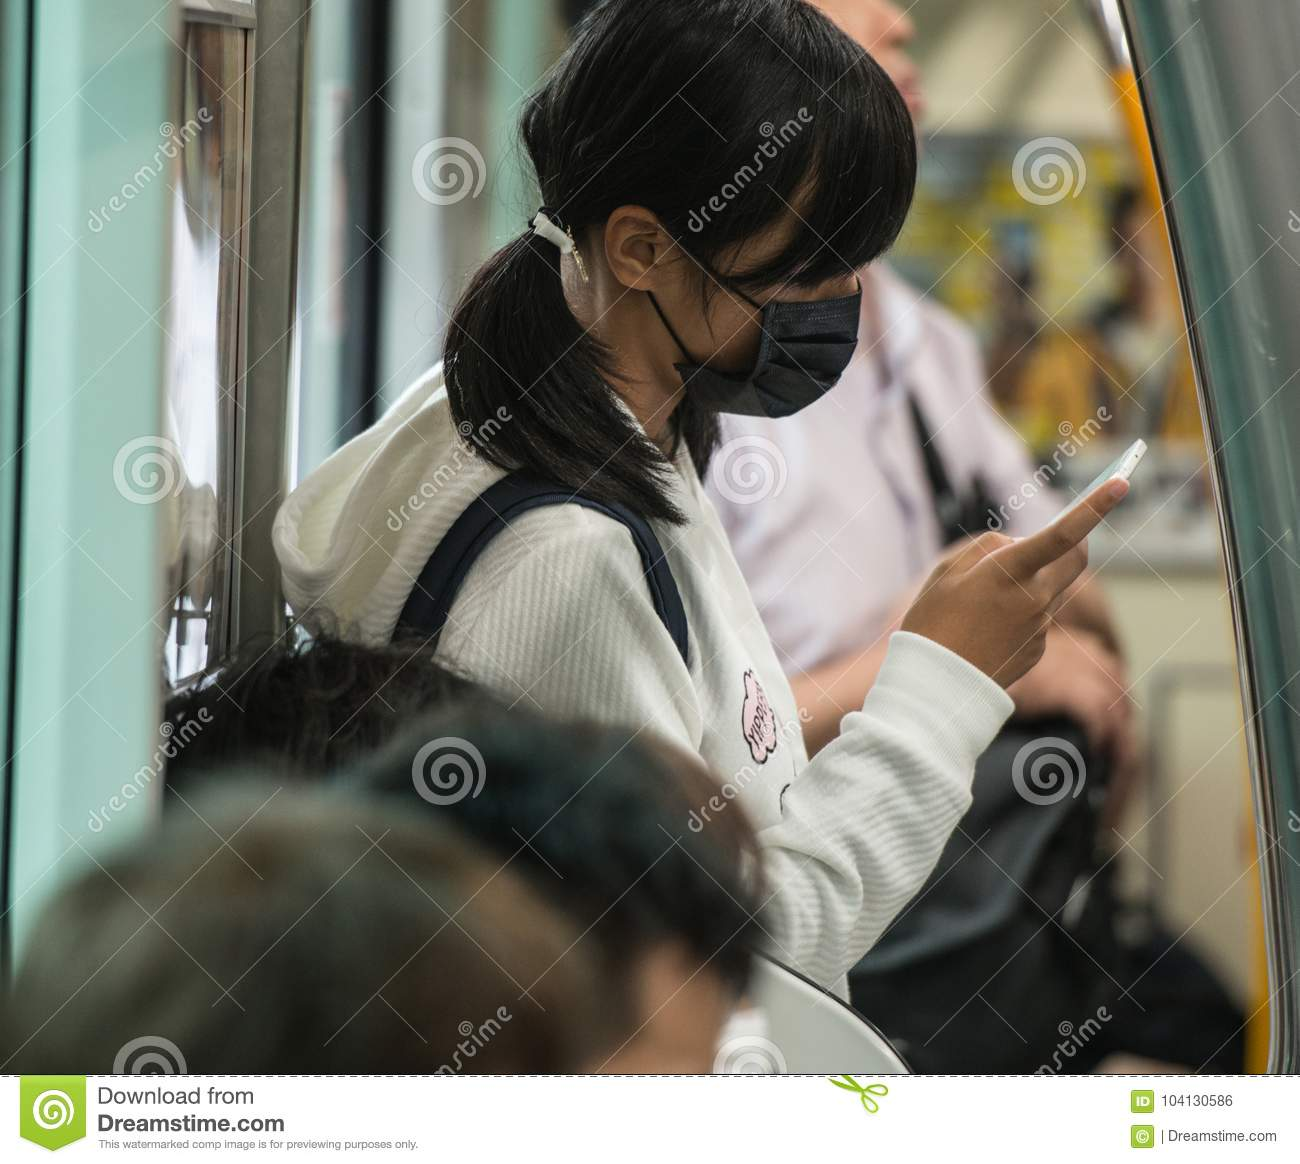 Japan School Girl Surgical And Dressed Mask In Uniform